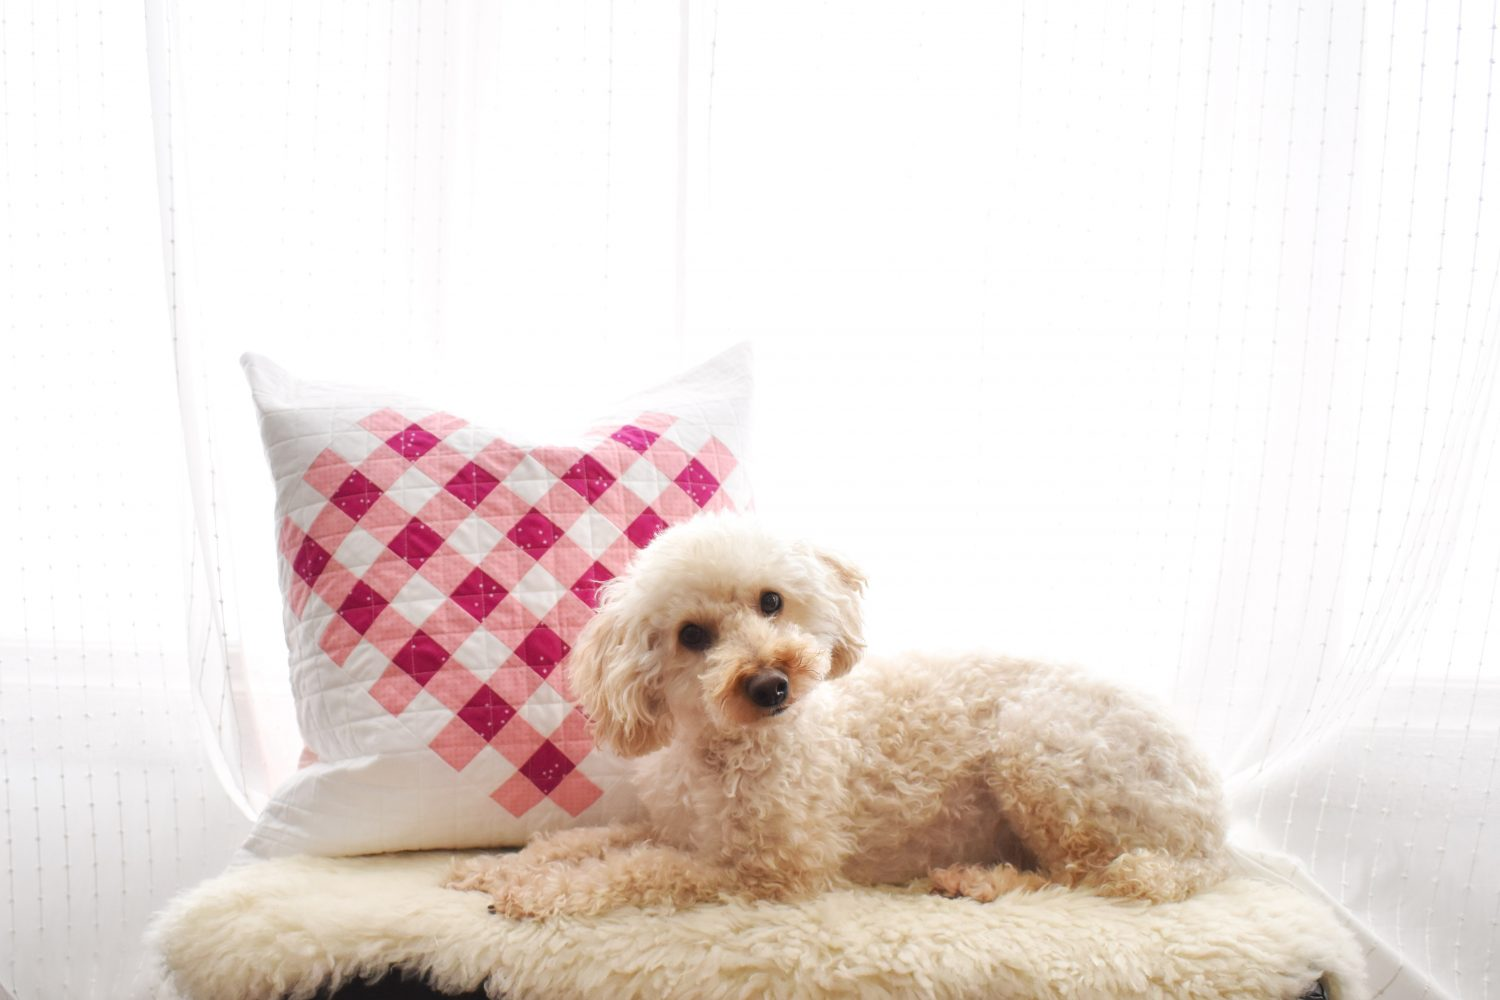 Woven Hearts pillow made with Riley Blake Designs fabrics